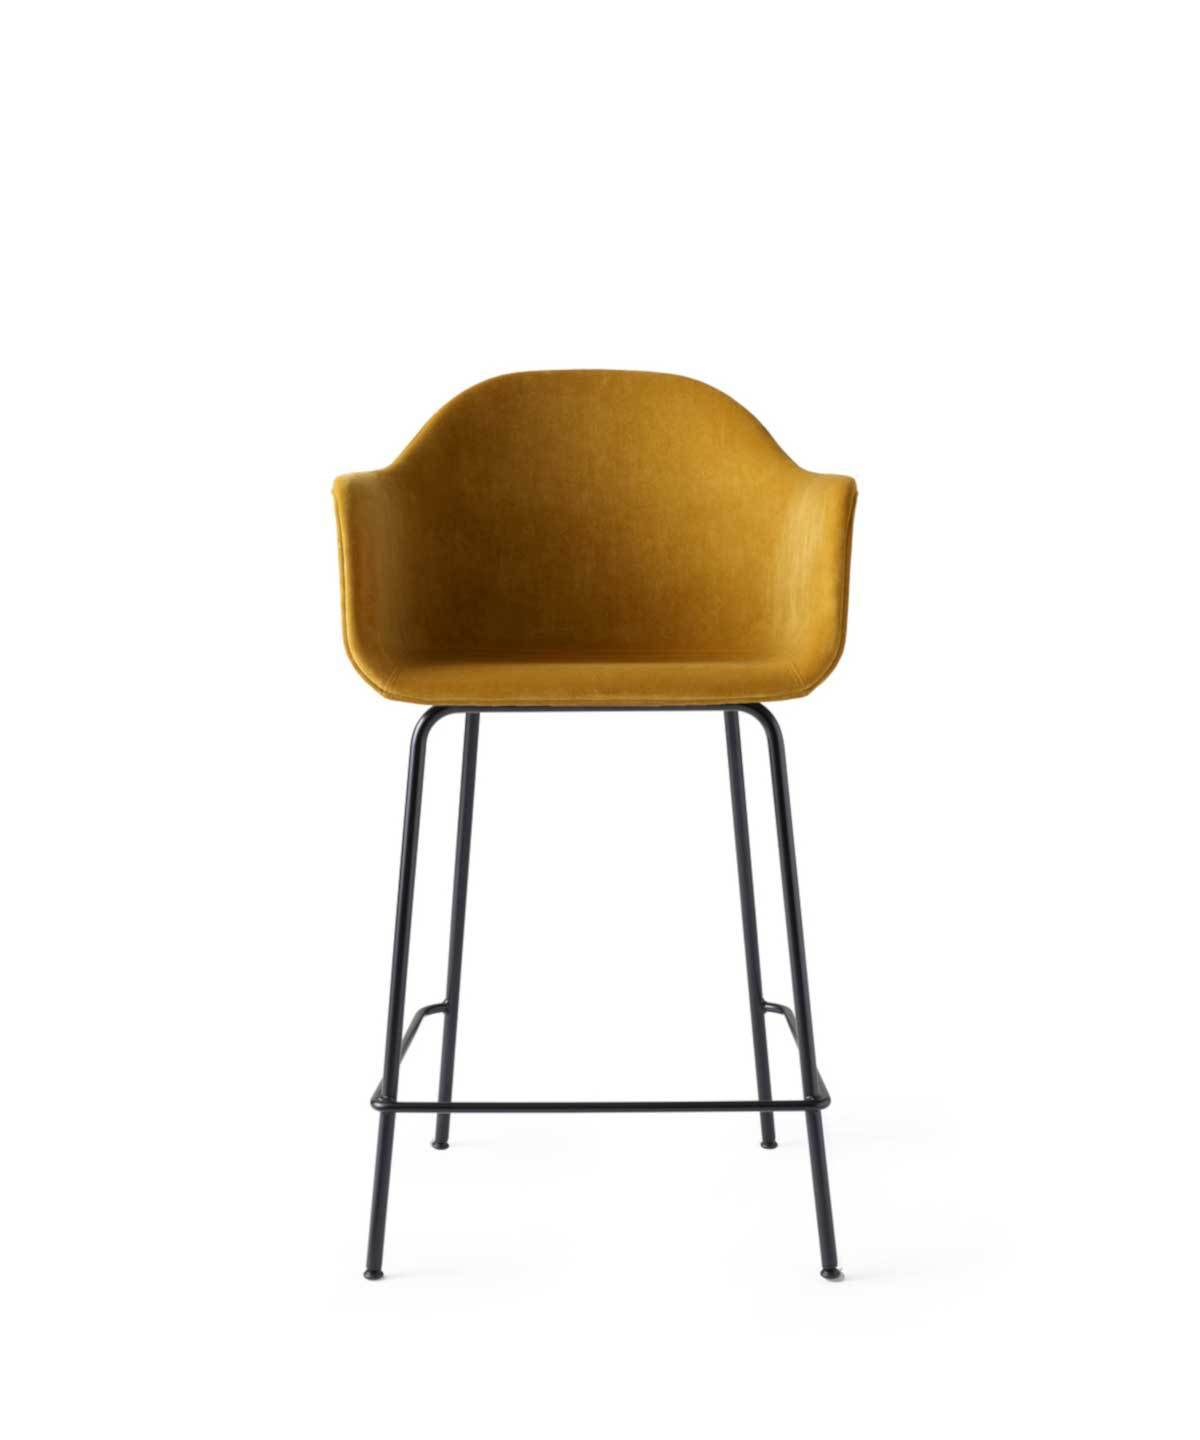 Harbour Bar Chair, Upholstered Shell